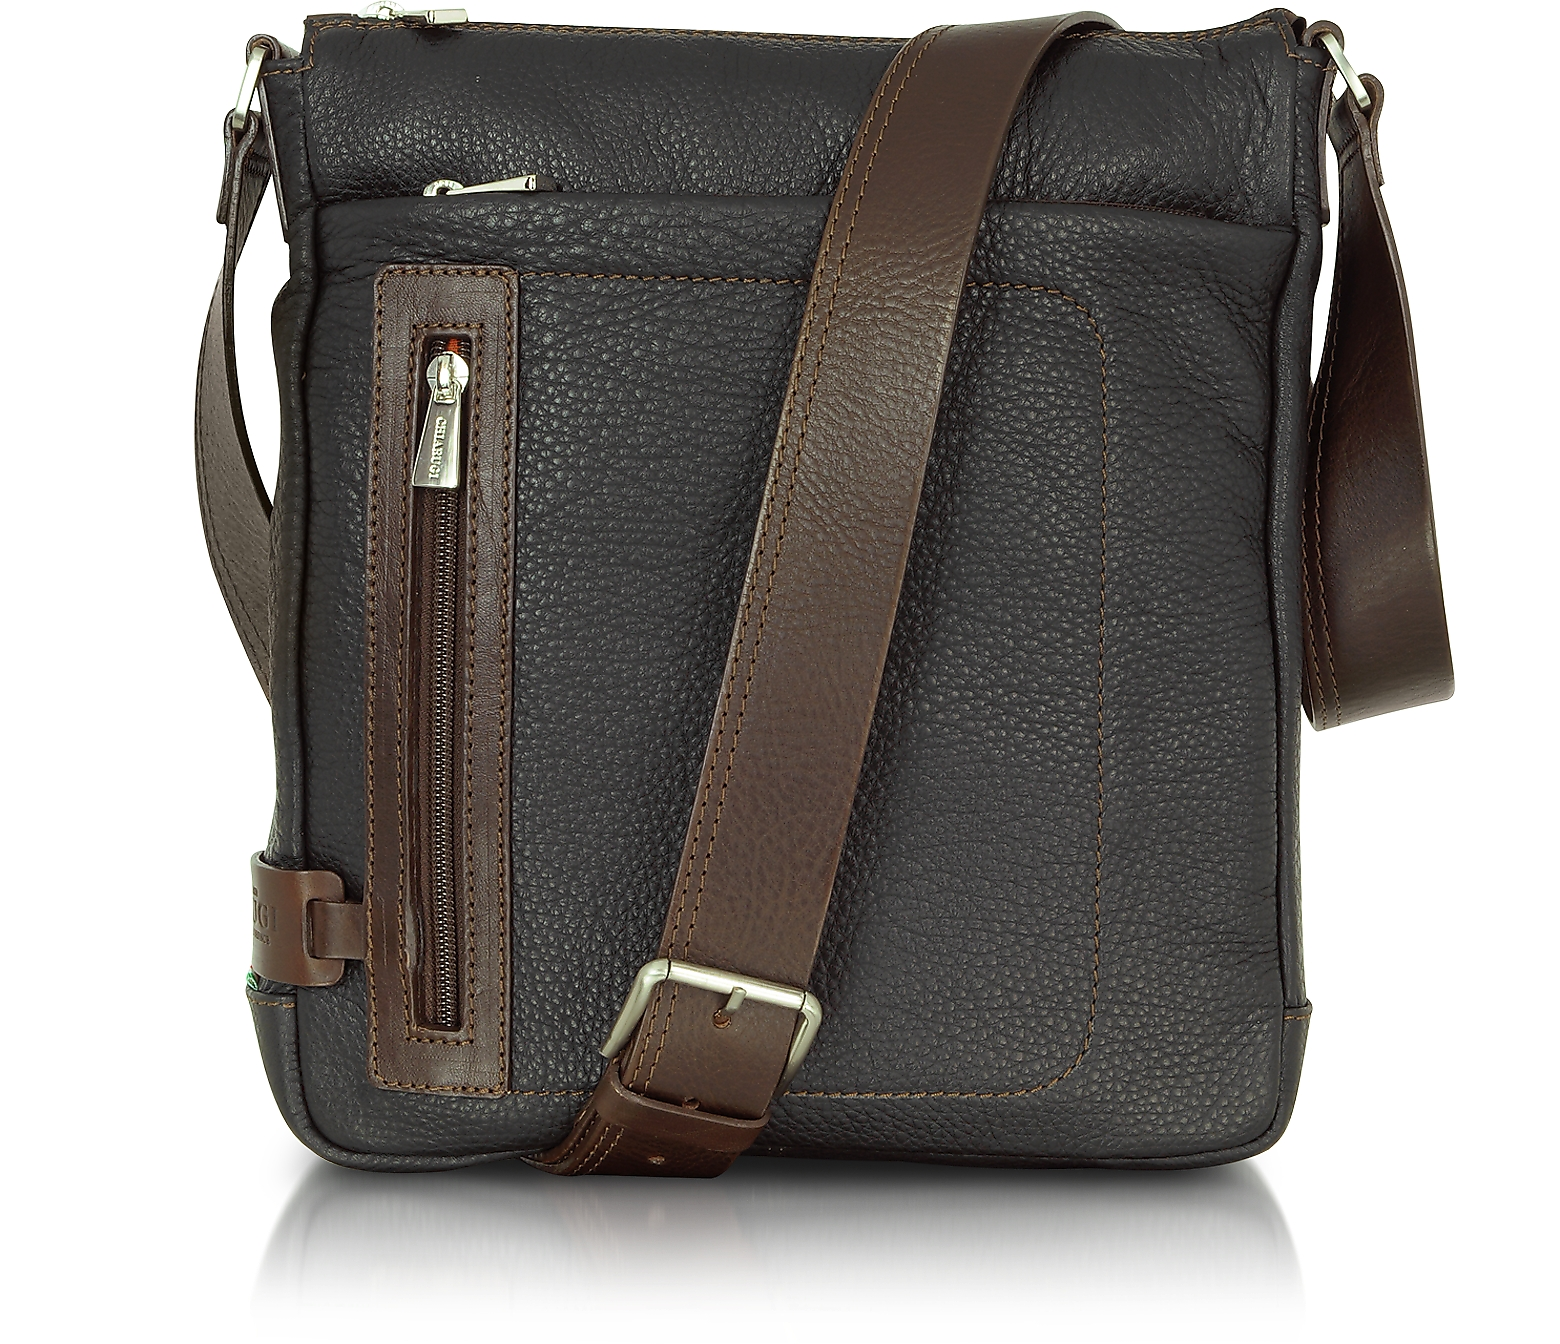 Black and Brown Leather Vertical Messenger